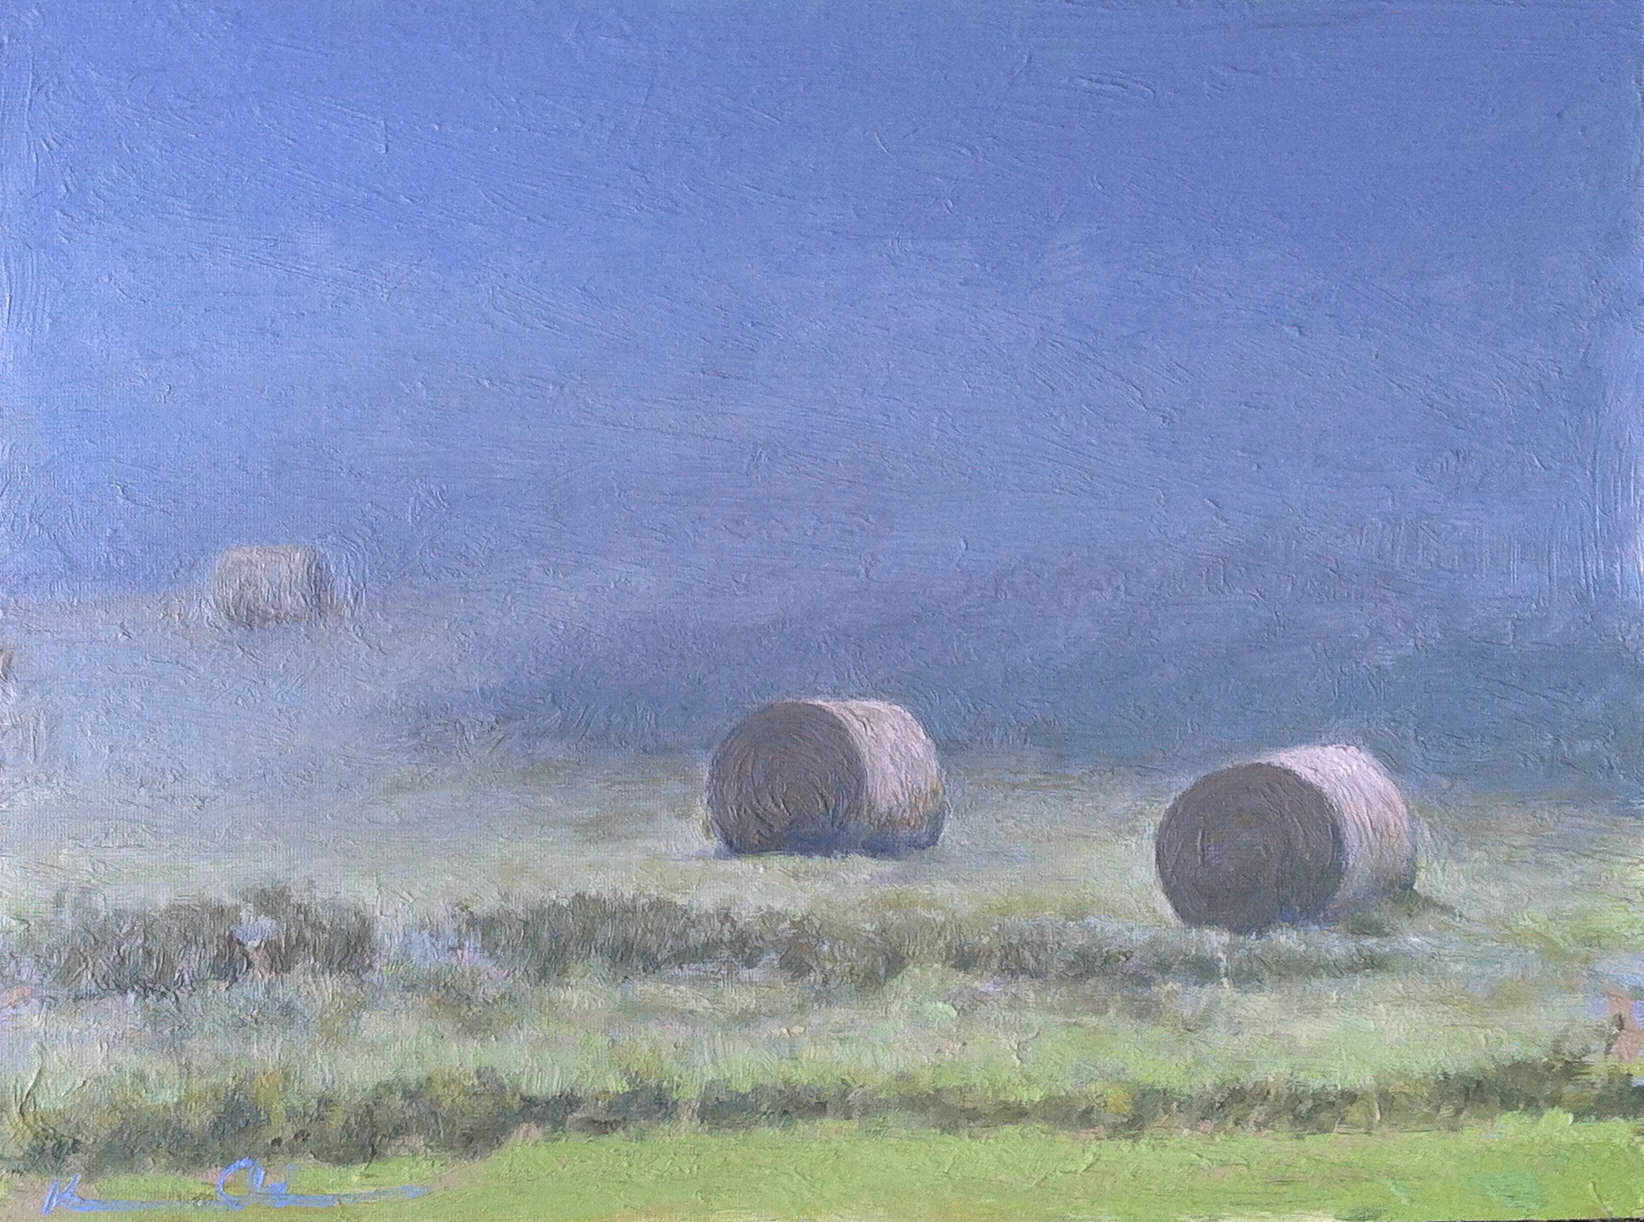 Hay in Fog 8 X 10 oil on panel sold